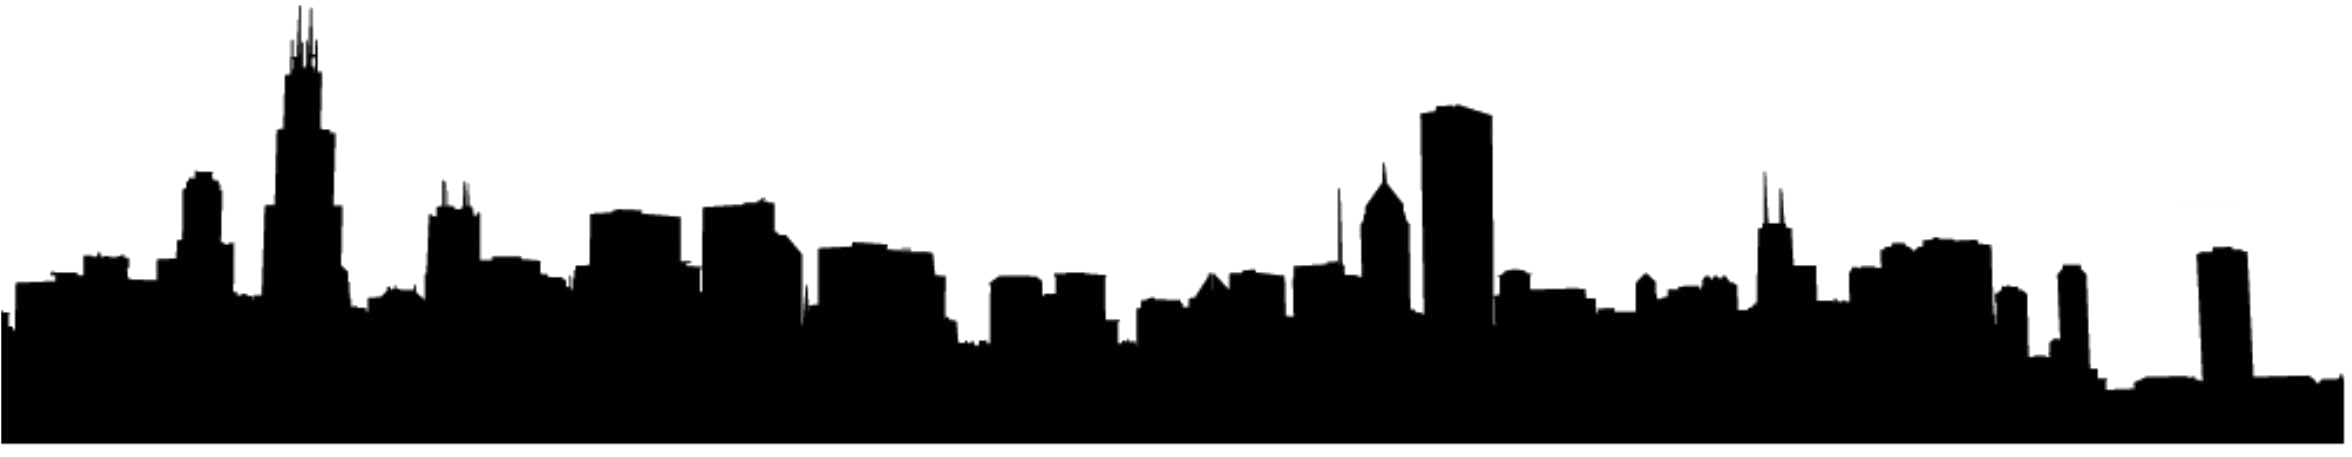 2352x457 Cities Drawing Cartoon Transparent Png Clipart Free Download